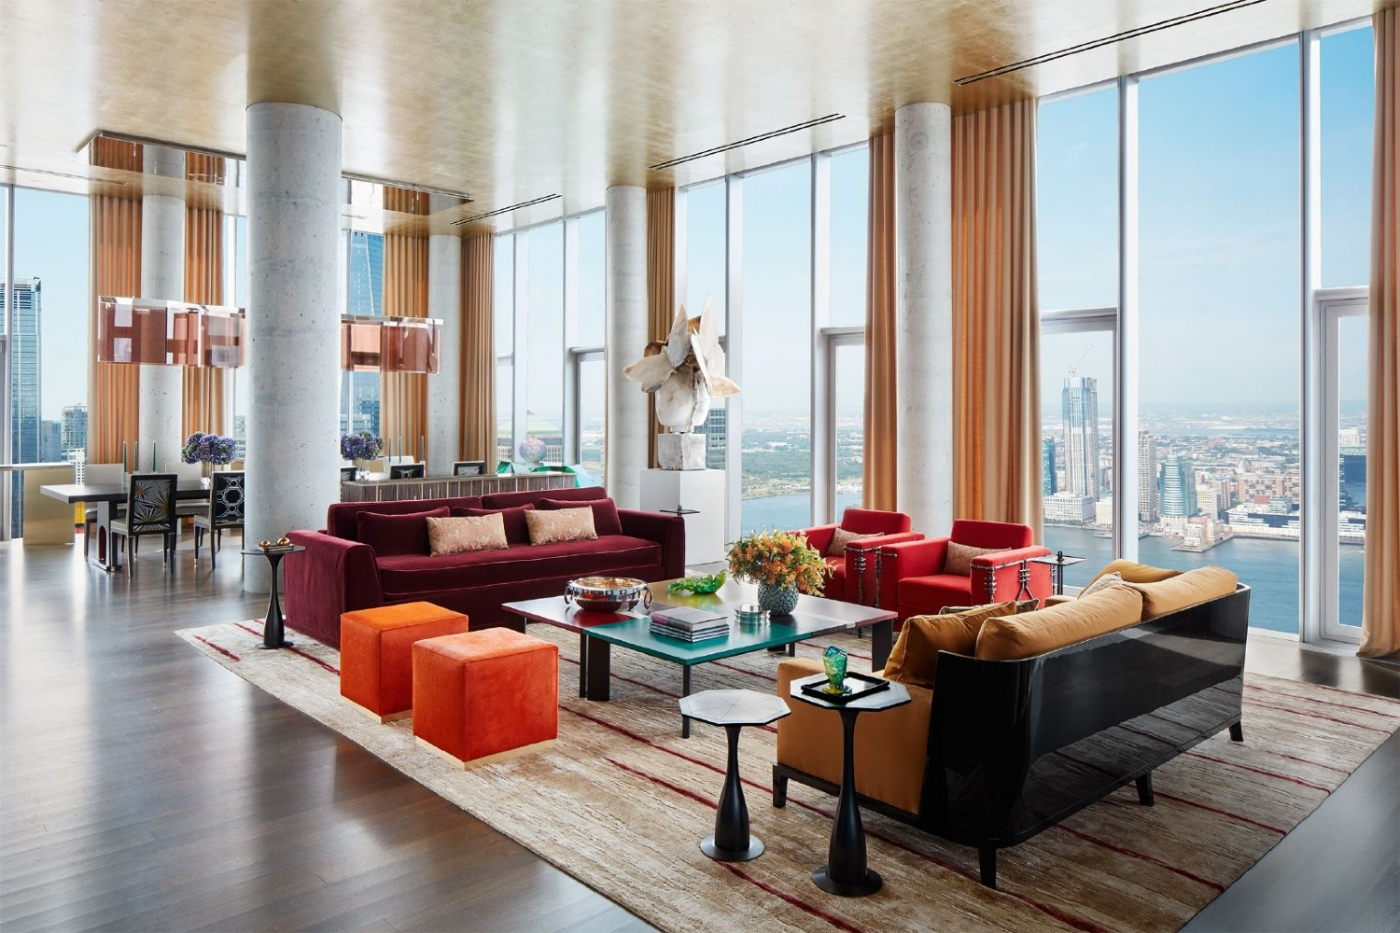 interior design projects New York City's Best Interior Design Projects: Opulent Luxury Homes feature image inspirations and ideas 1400x933